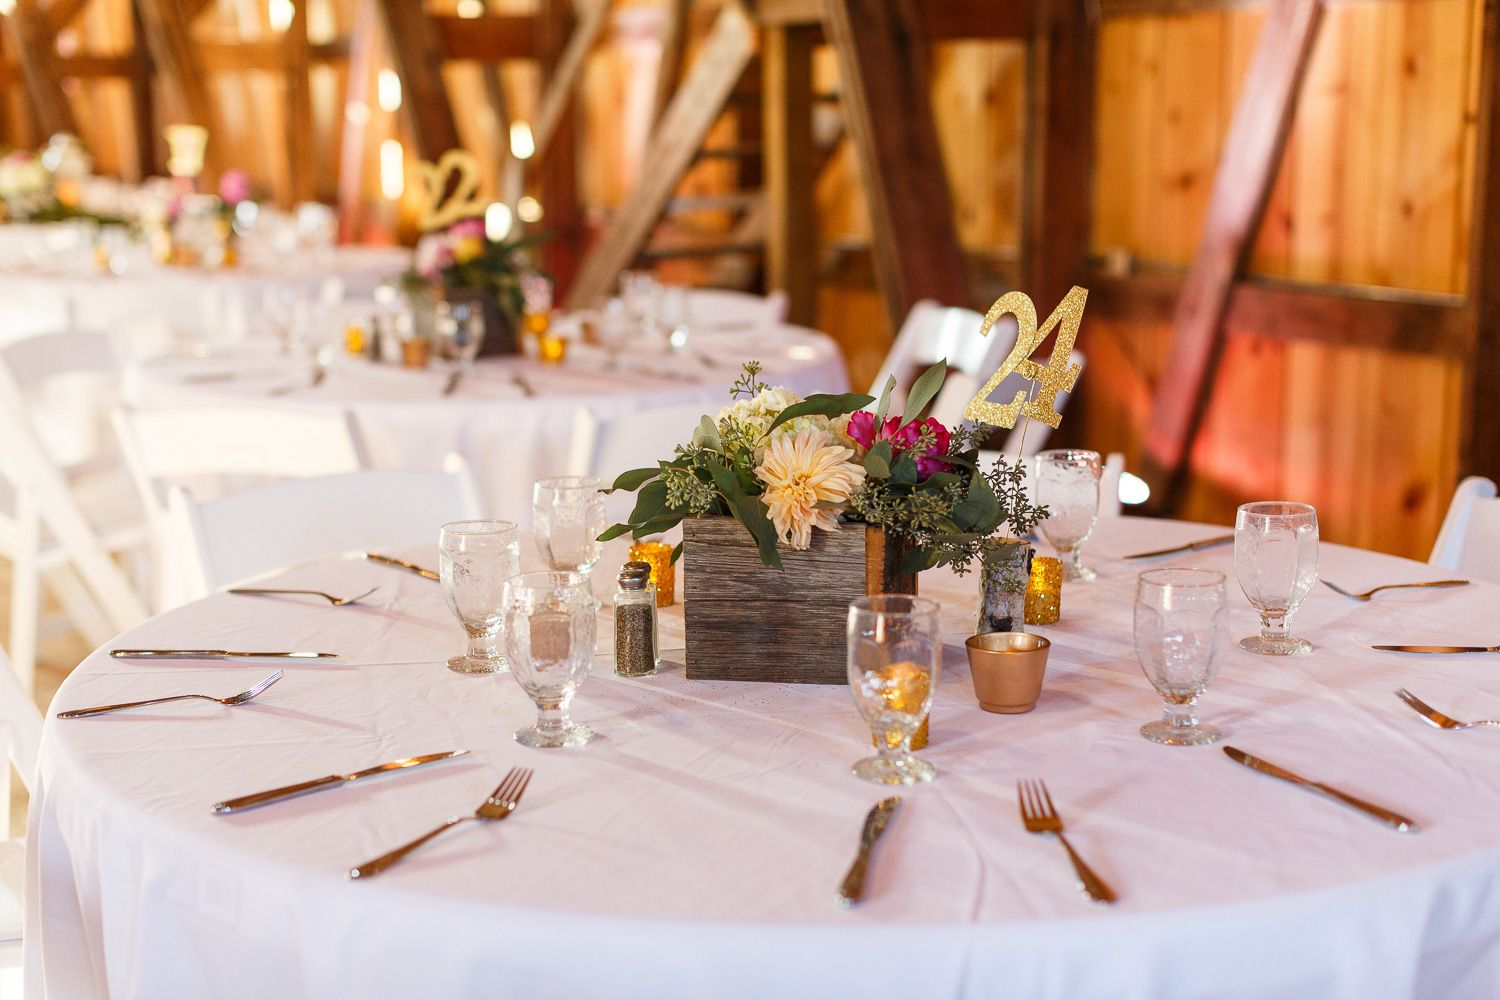 Photography Rustic Wedding Decor Wedding Table Decorations Professional Wedding Photographer